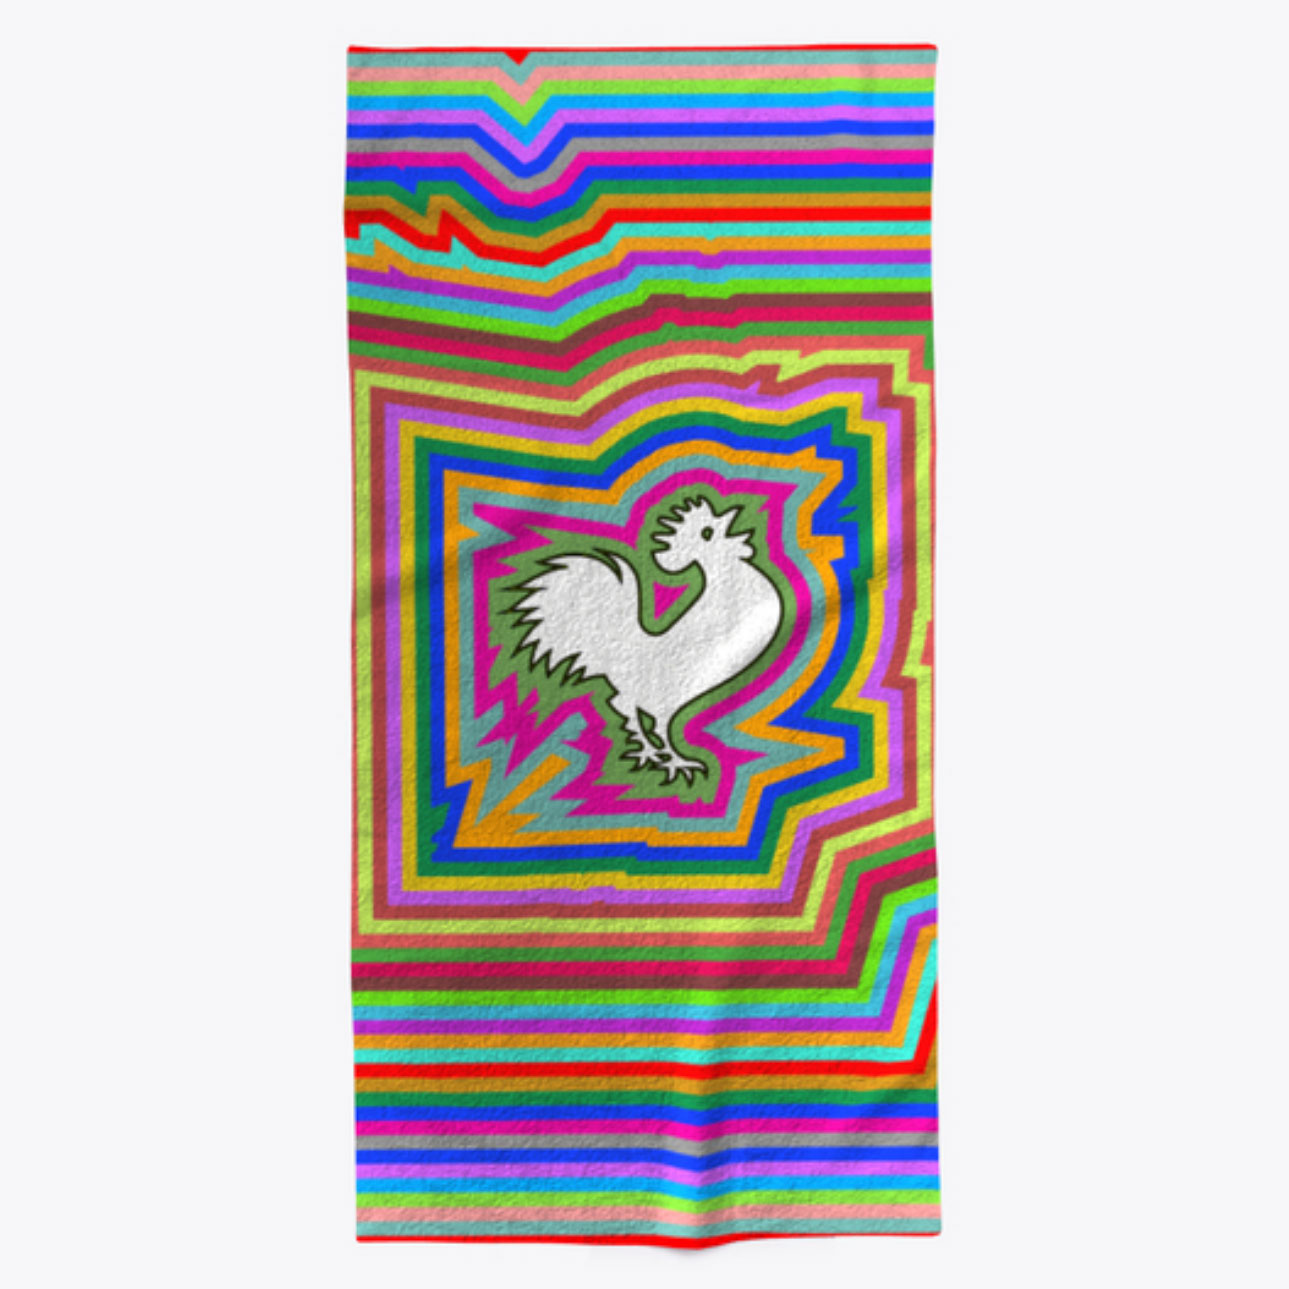 The Infinity Rooster Finds Its Way To Your Beach Chair, With A Towel You  Could Spot From The Breakers. New Batches Print Every Three Daysu2014order  Yours Now.